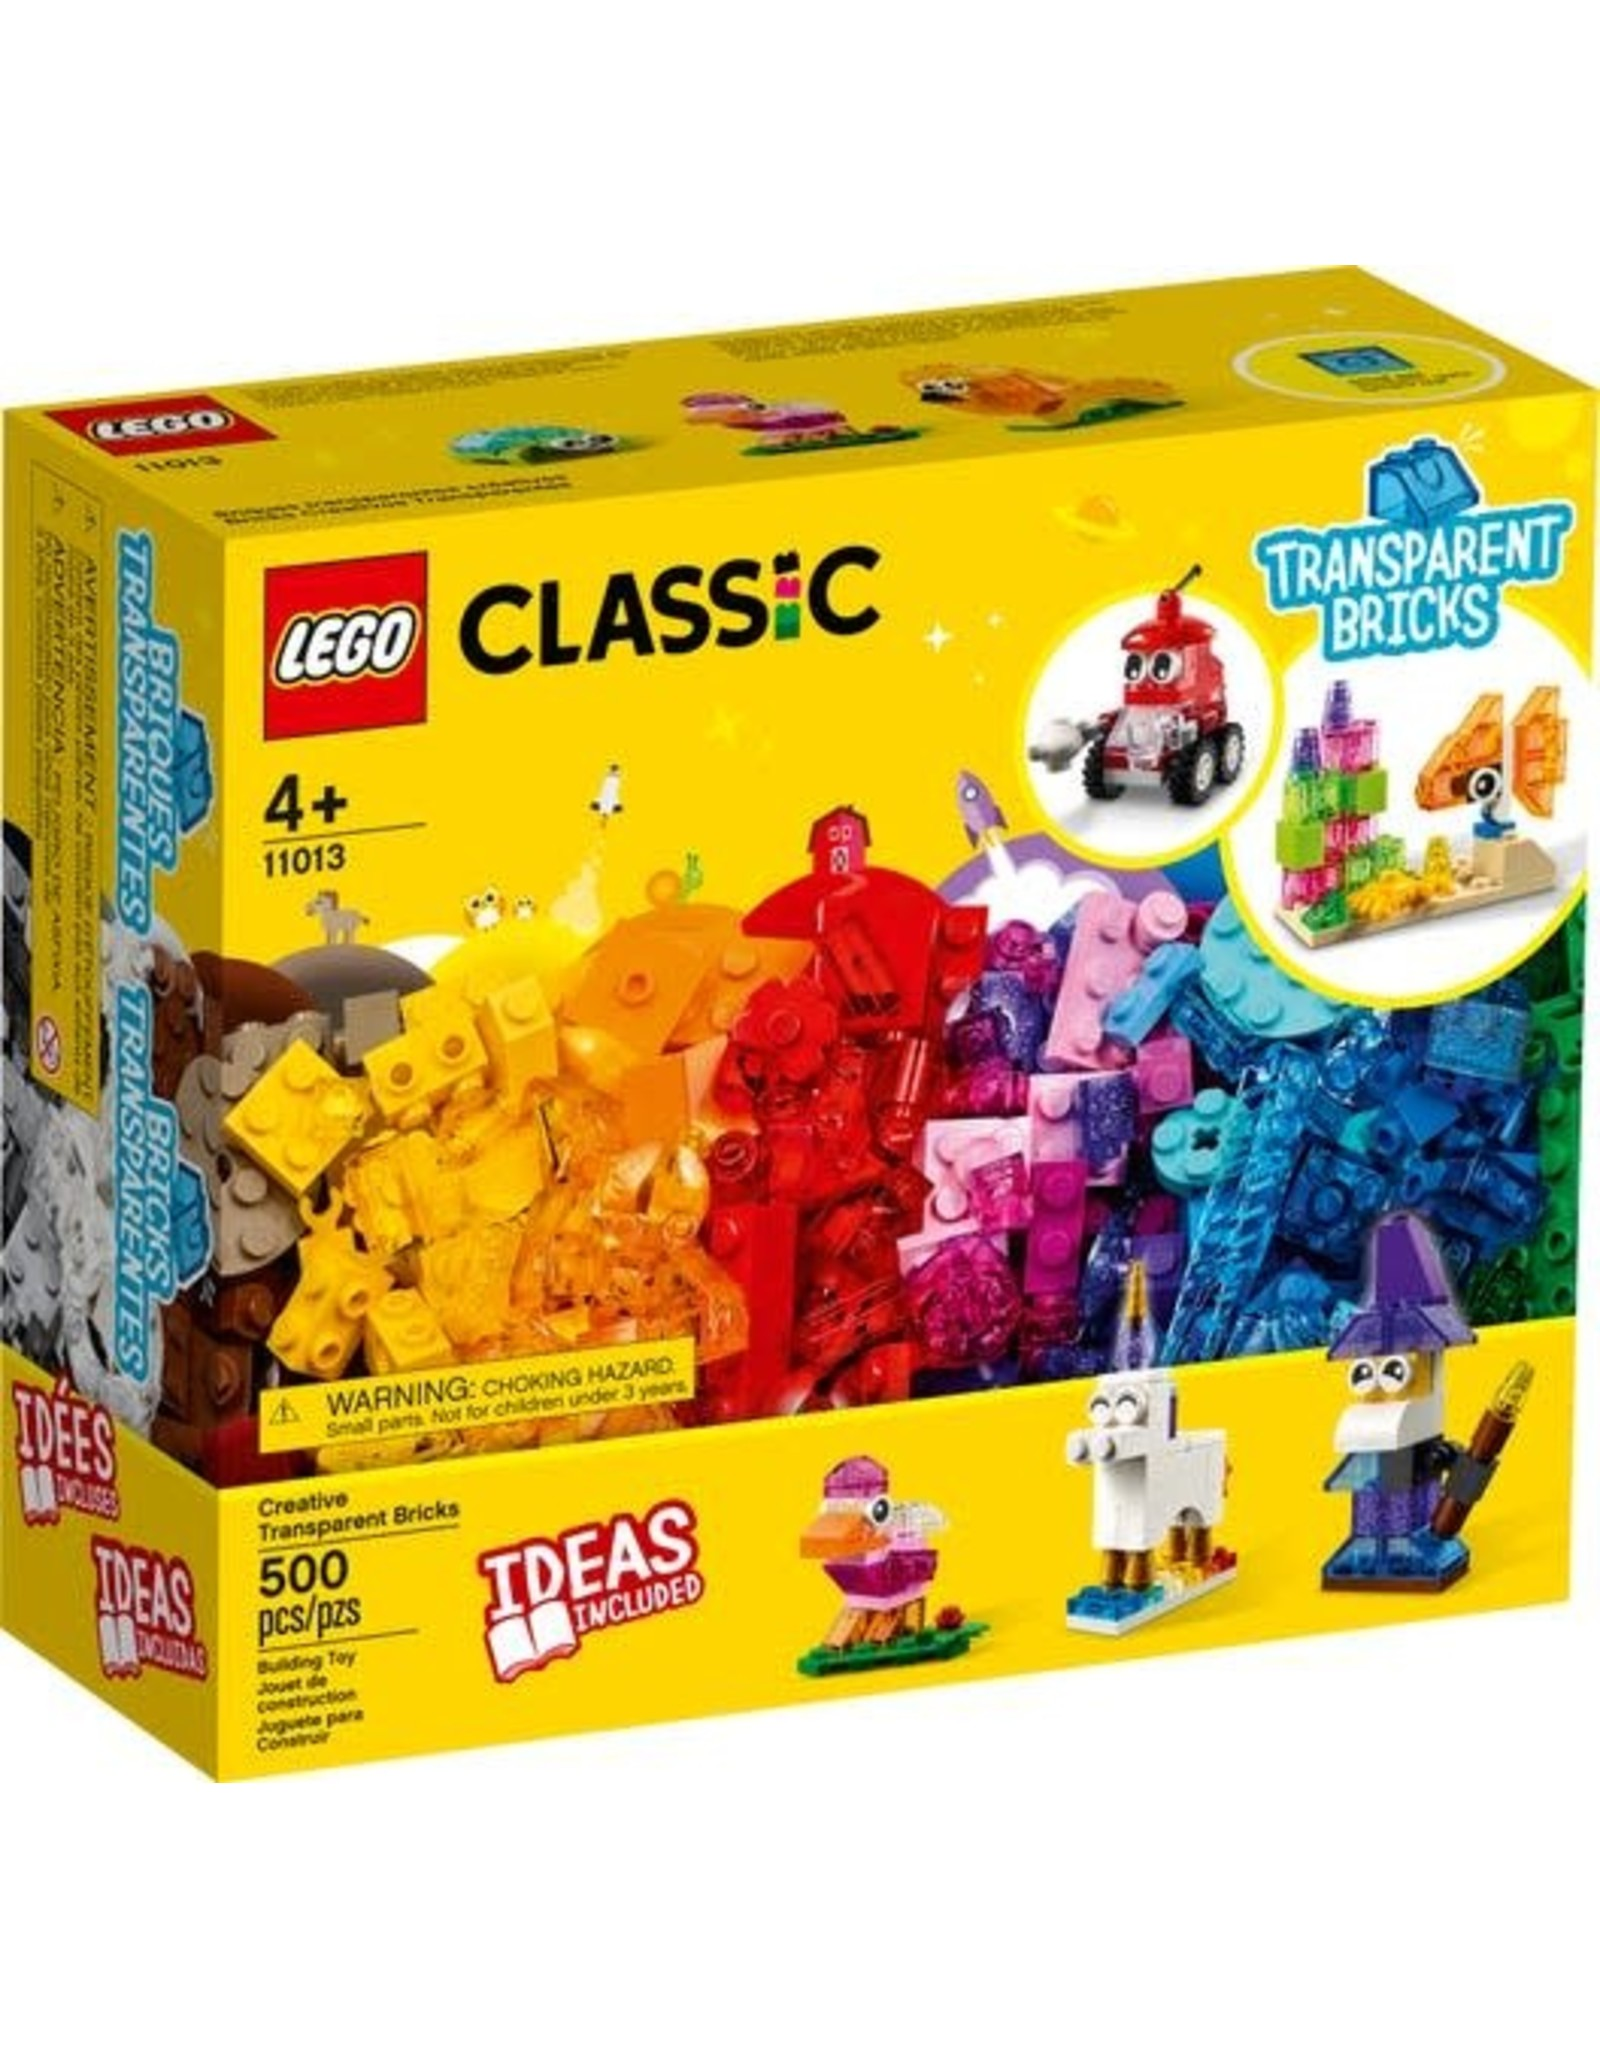 Lego Creative Transparent Bricks